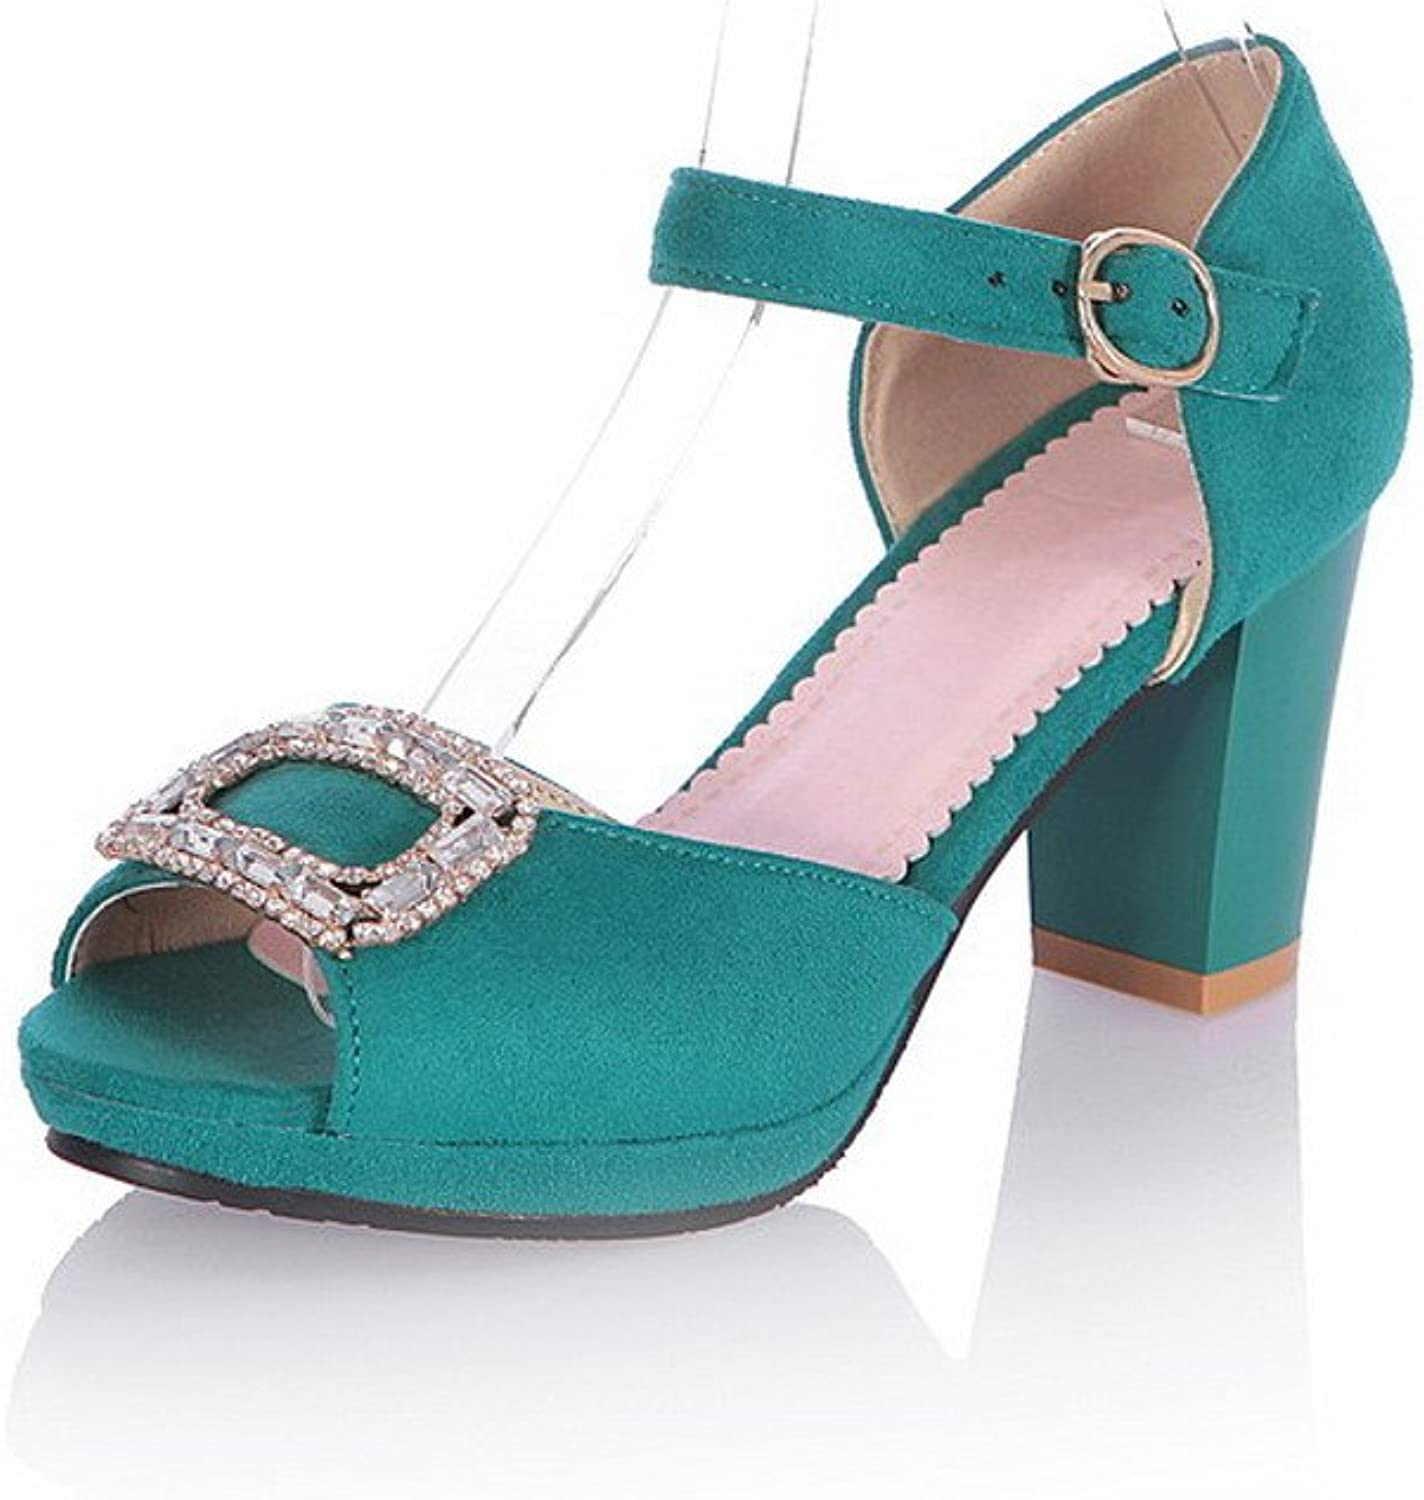 WeiPoot Women Peep Toe High Heel PU Frosted Solid Sandals with Rhinestones, bluee, 9.5 B(M) US